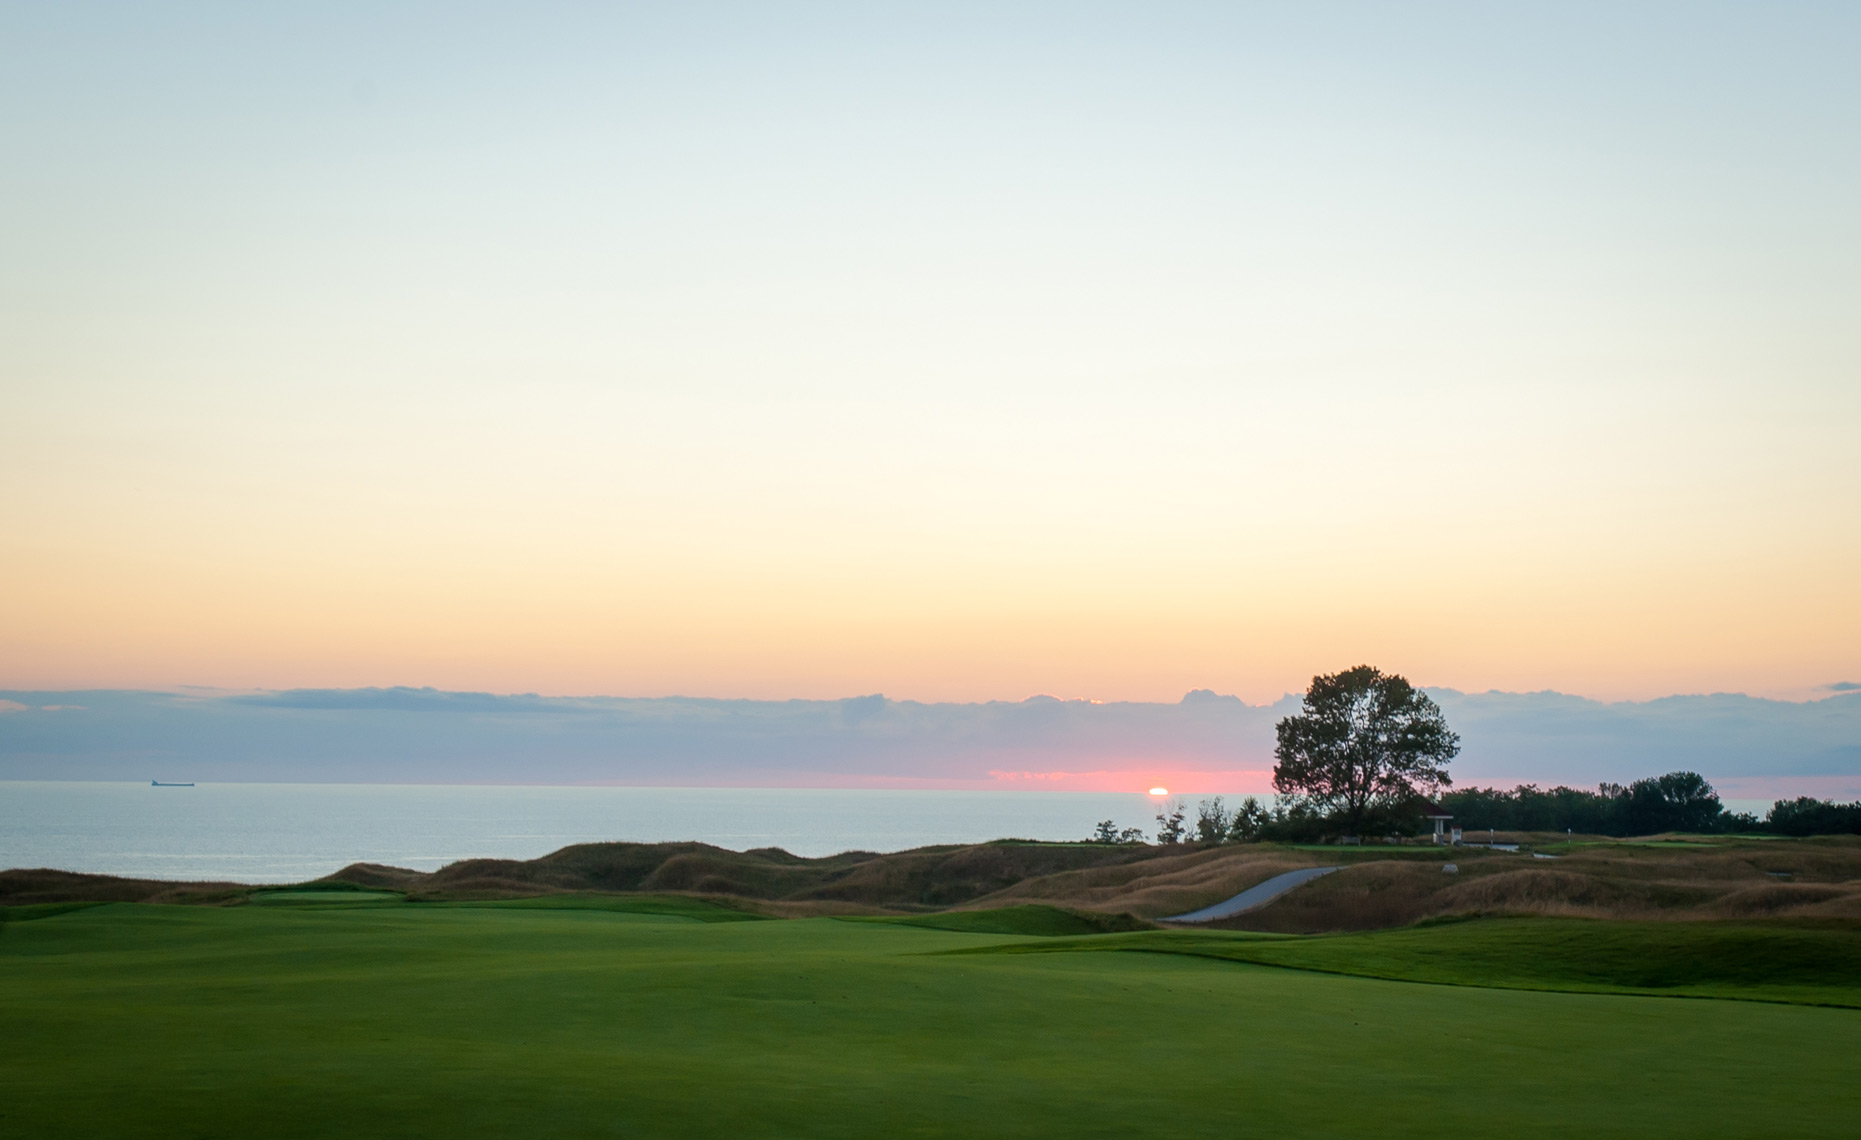 Neil-Colton-photographer-arcadia-bluffs-gc-fine-art-172-wr